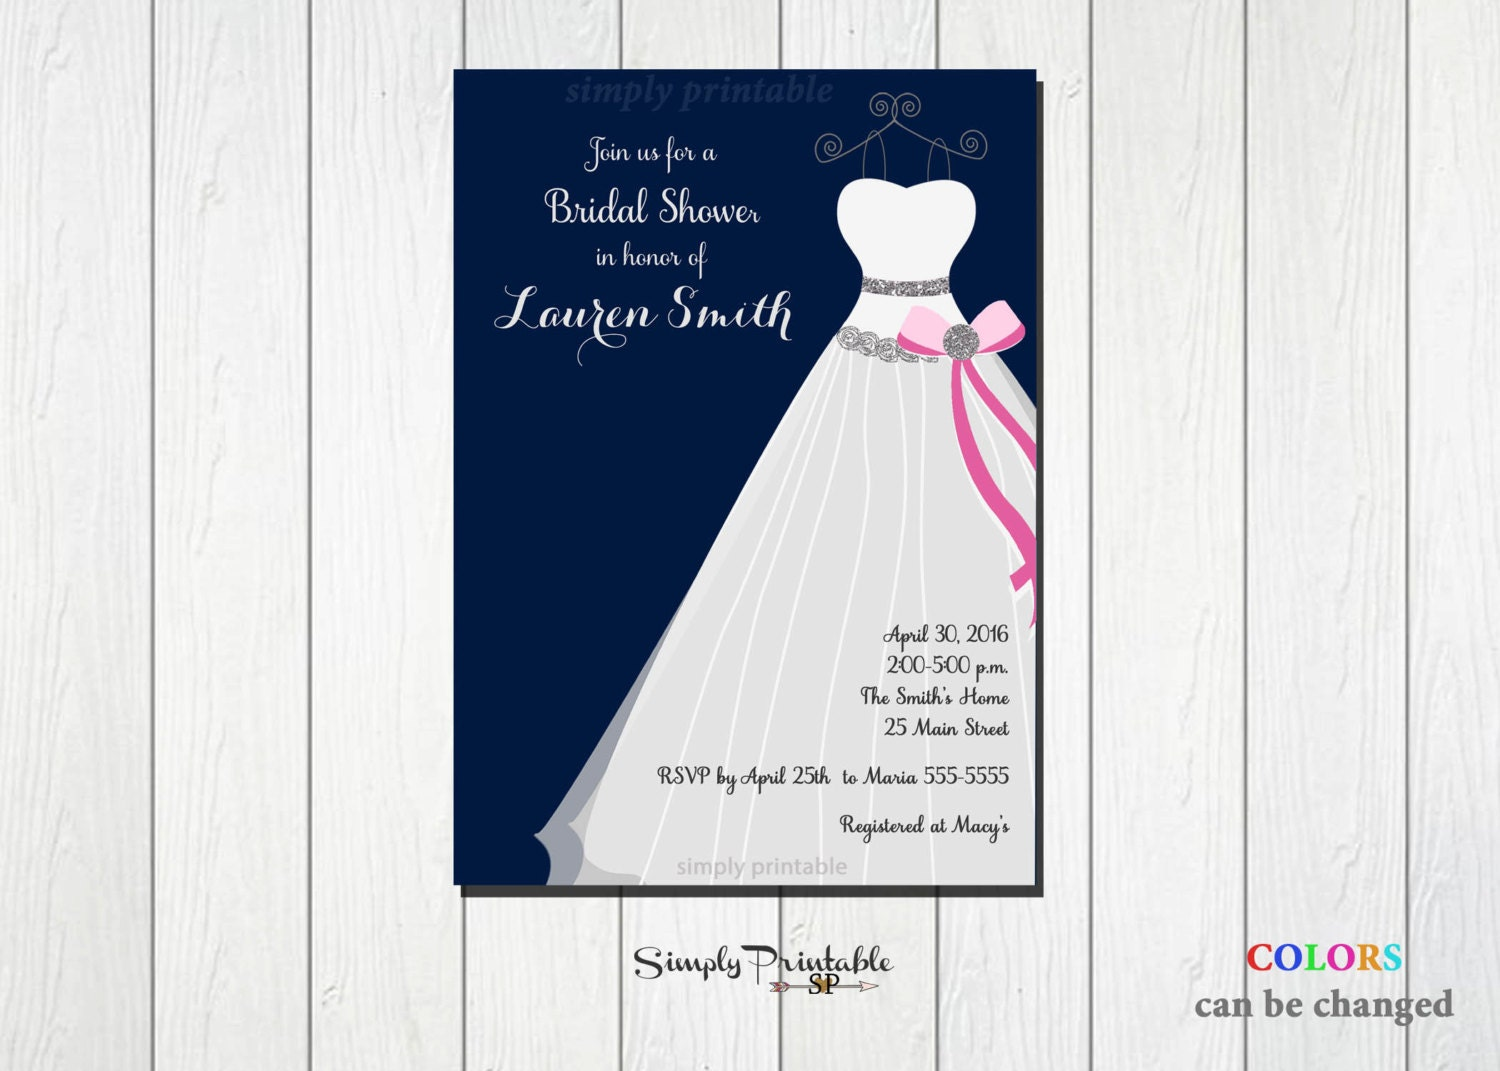 Pink And Navy Blue Wedding Invitations: Bridal Shower Invite Pink And Navy Blue Invitation Wedding